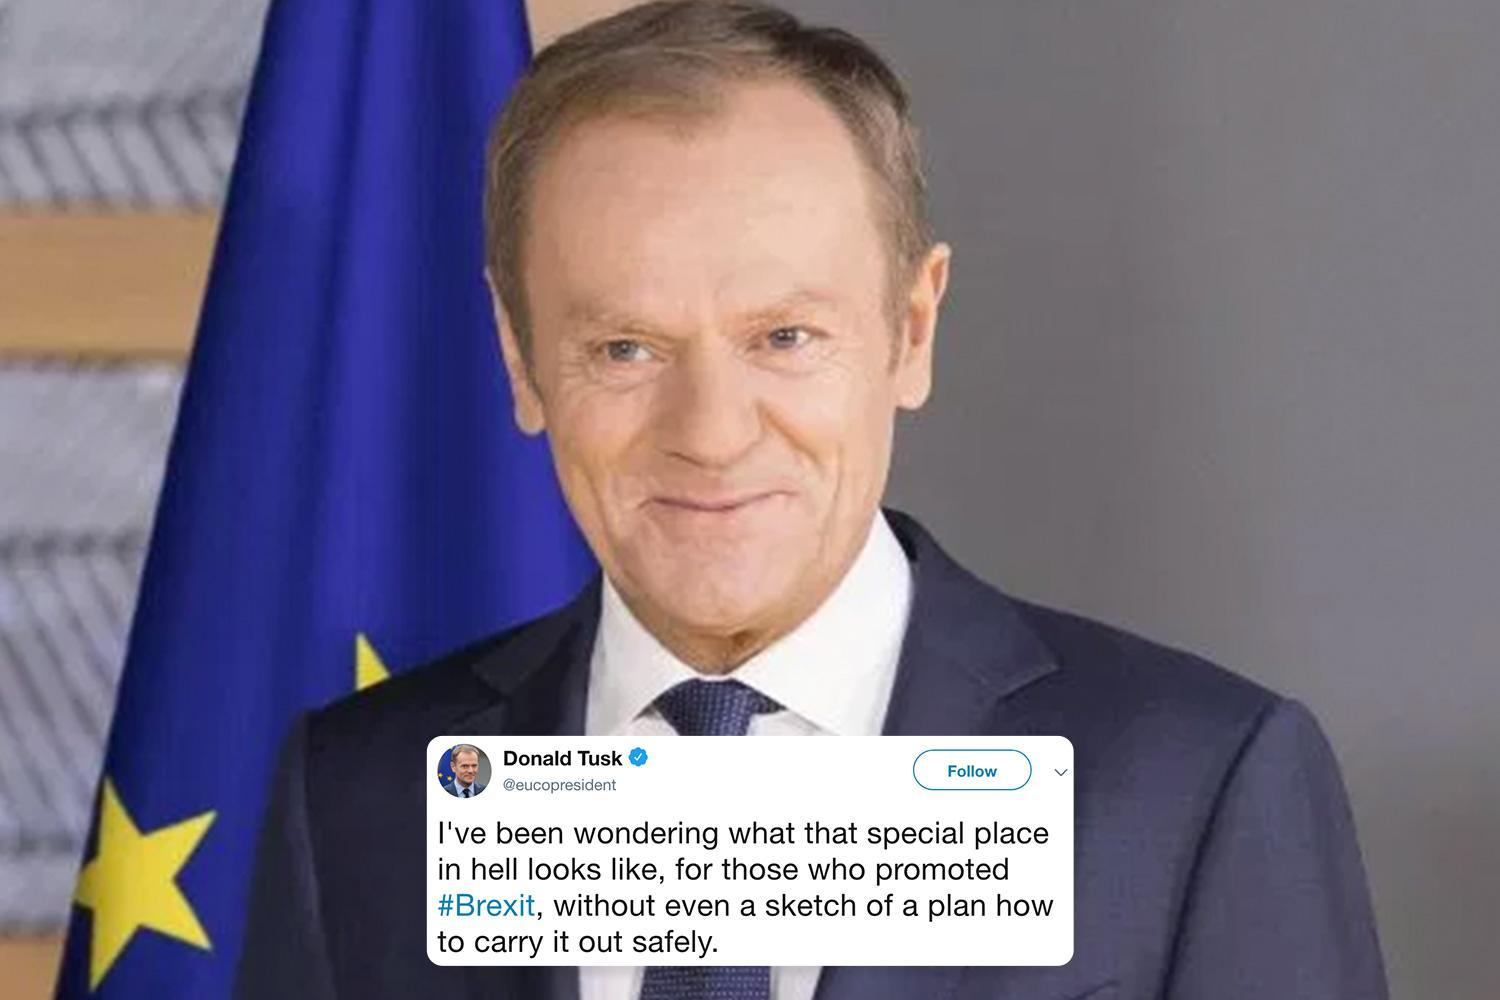 Sneering Eurocrat Donald Tusk says there's a 'special place in hell' for Brexiteers in extraordinary blast